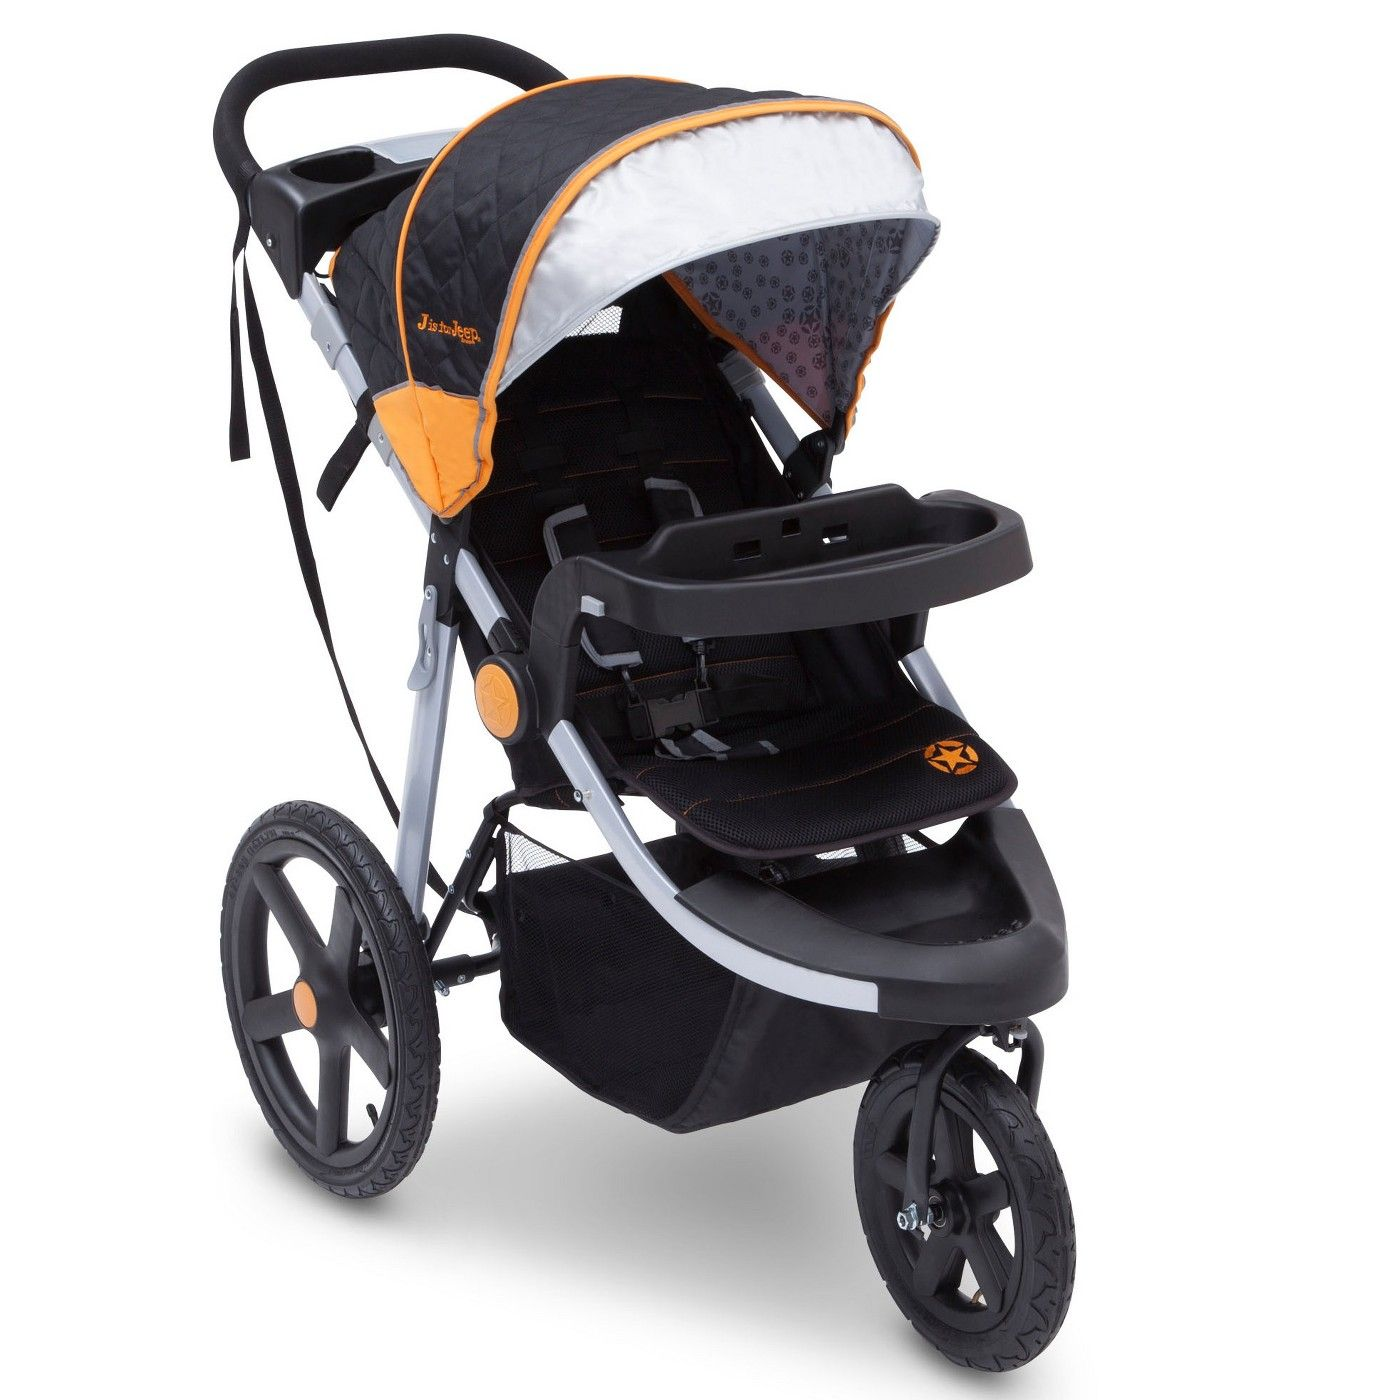 J Is For Jeep Brand Adventure All Terrain Jogger Stroller Image